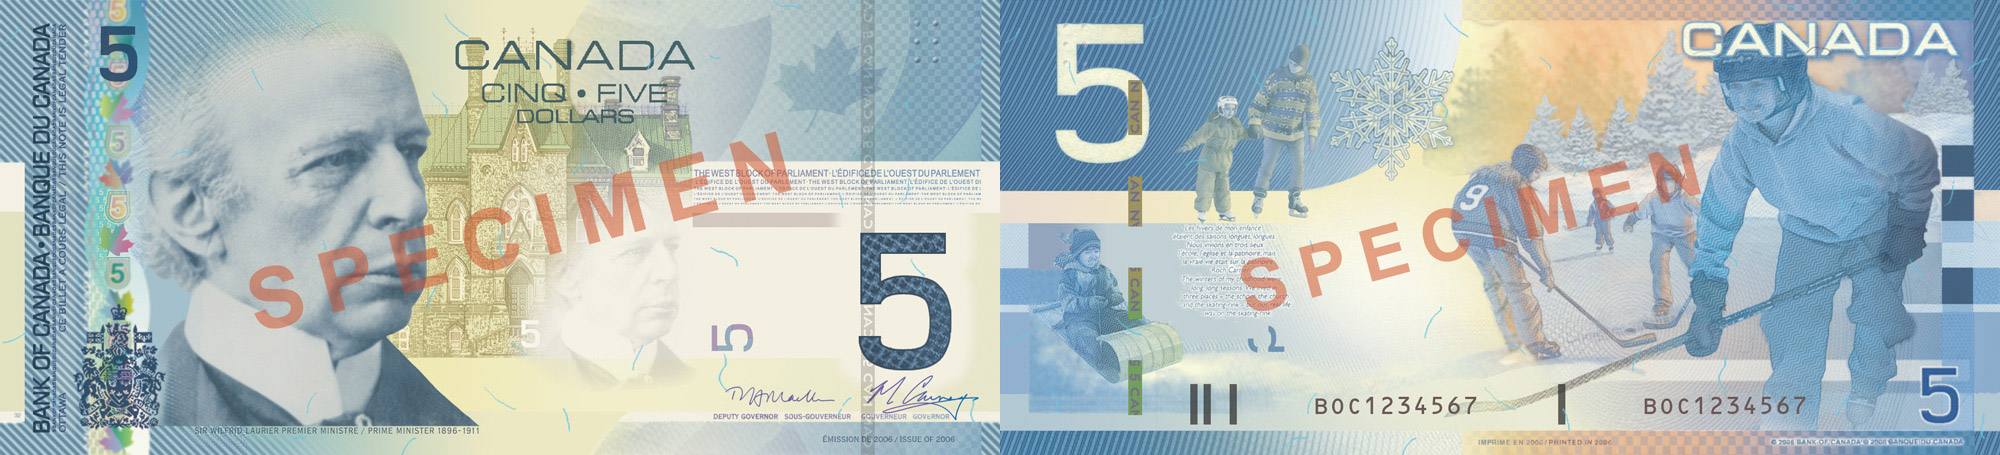 5 dollars 2004 to 2006 - Canada Banknote